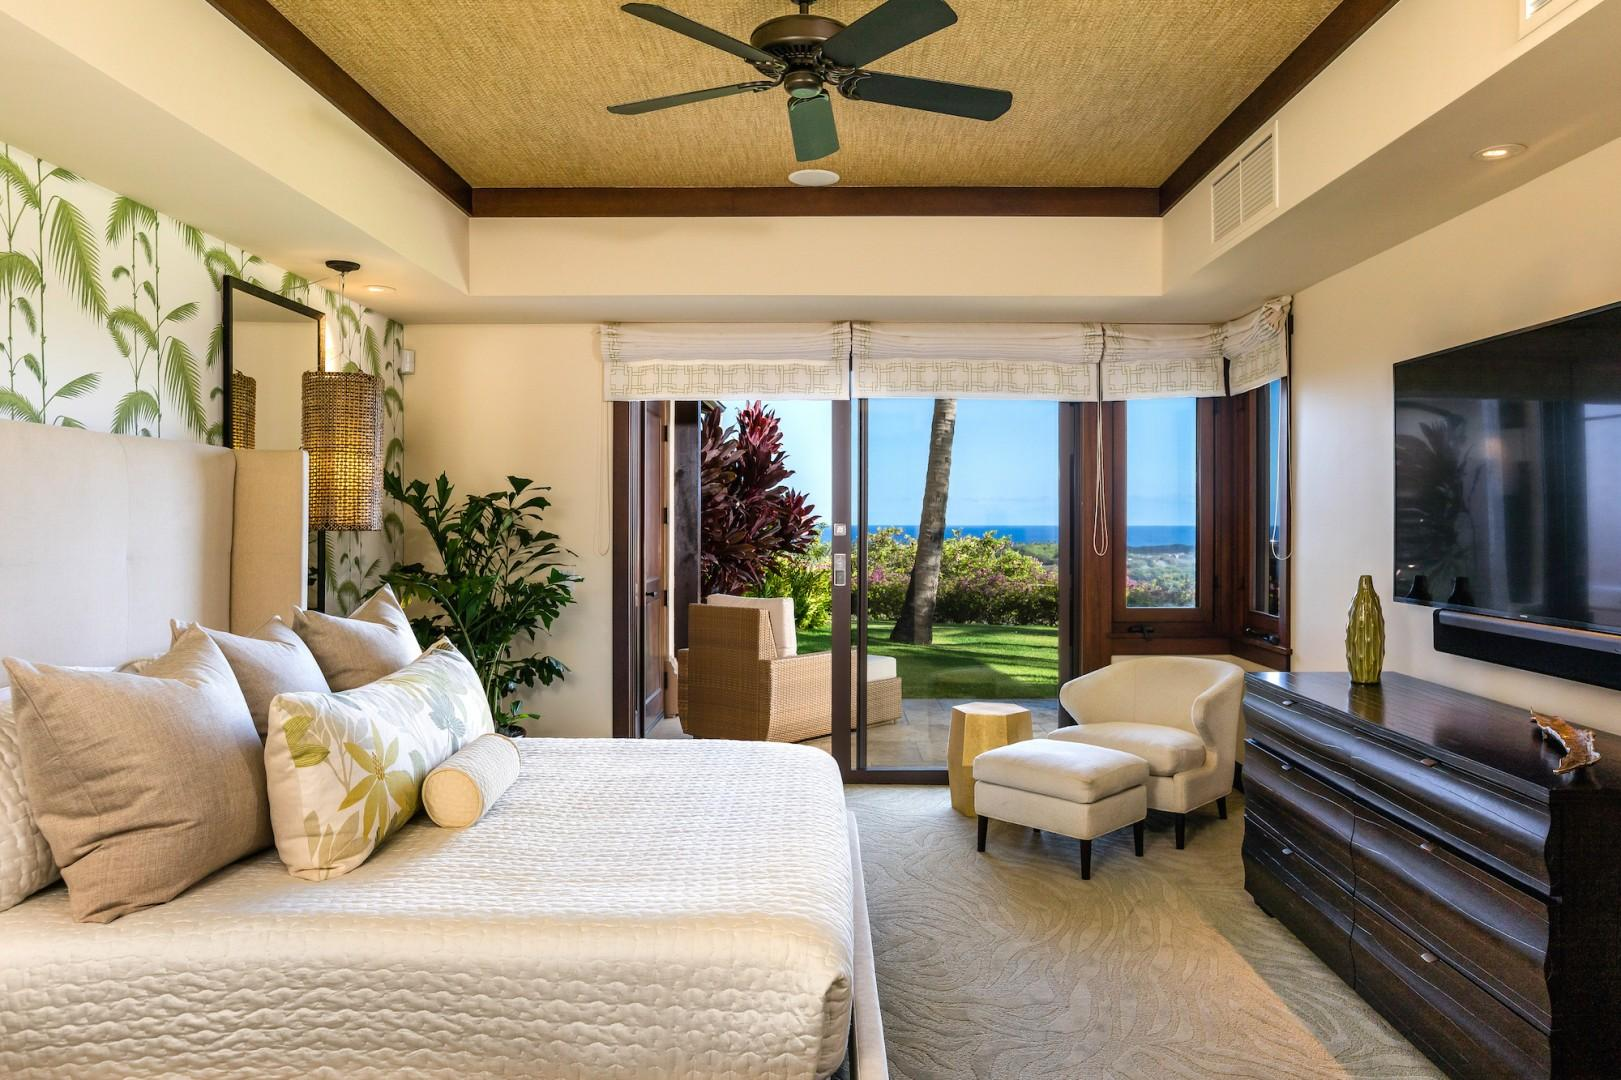 Master suite with private ocean-view deck, king-size bed, and large flat-screen TV with Sonos Sound Bar.